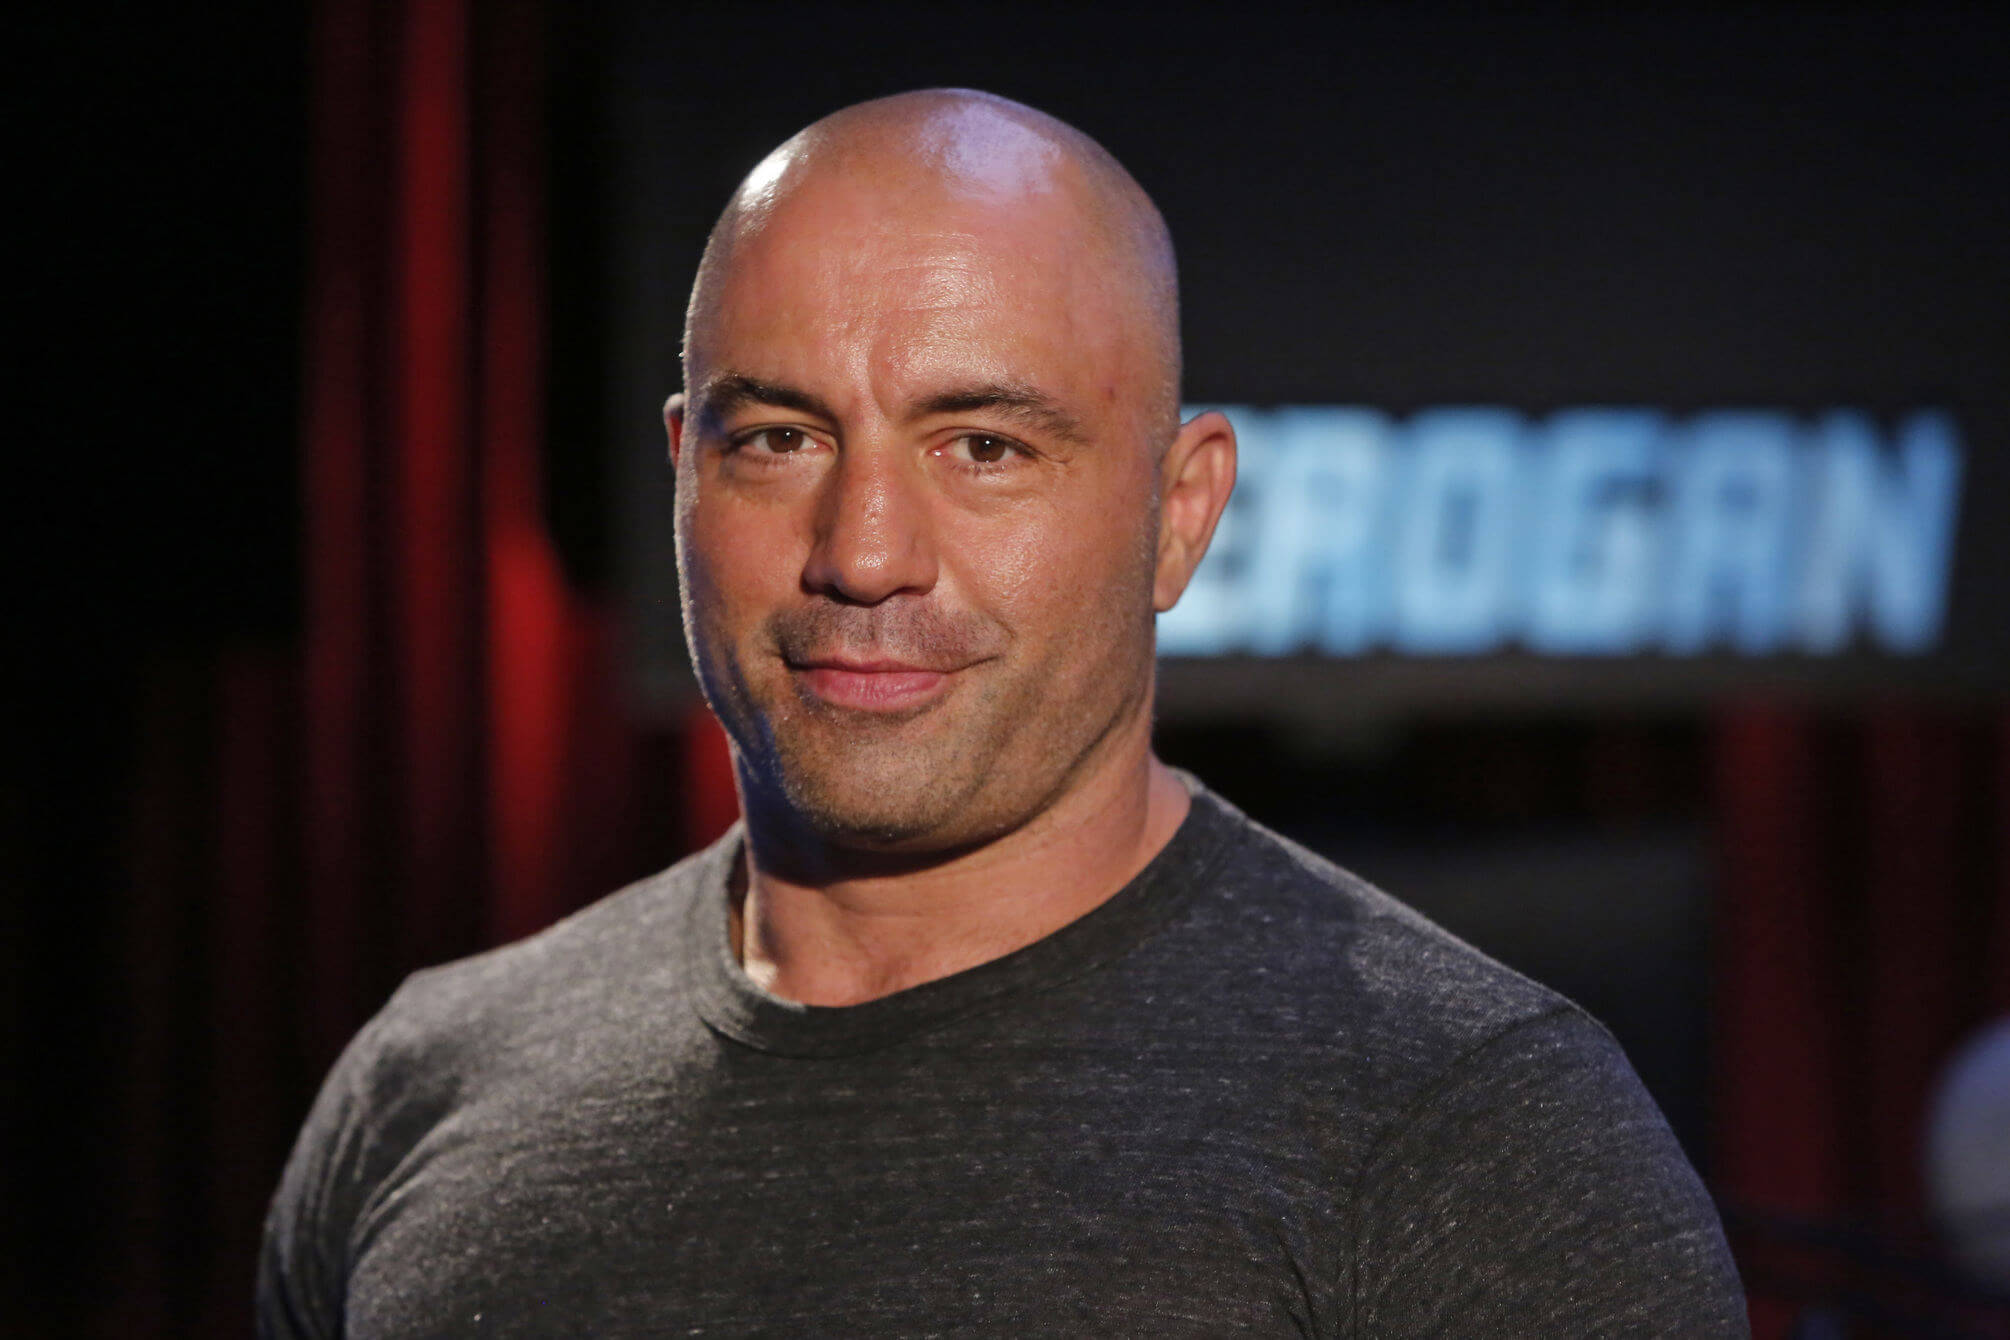 Who Is Joe Rogan?